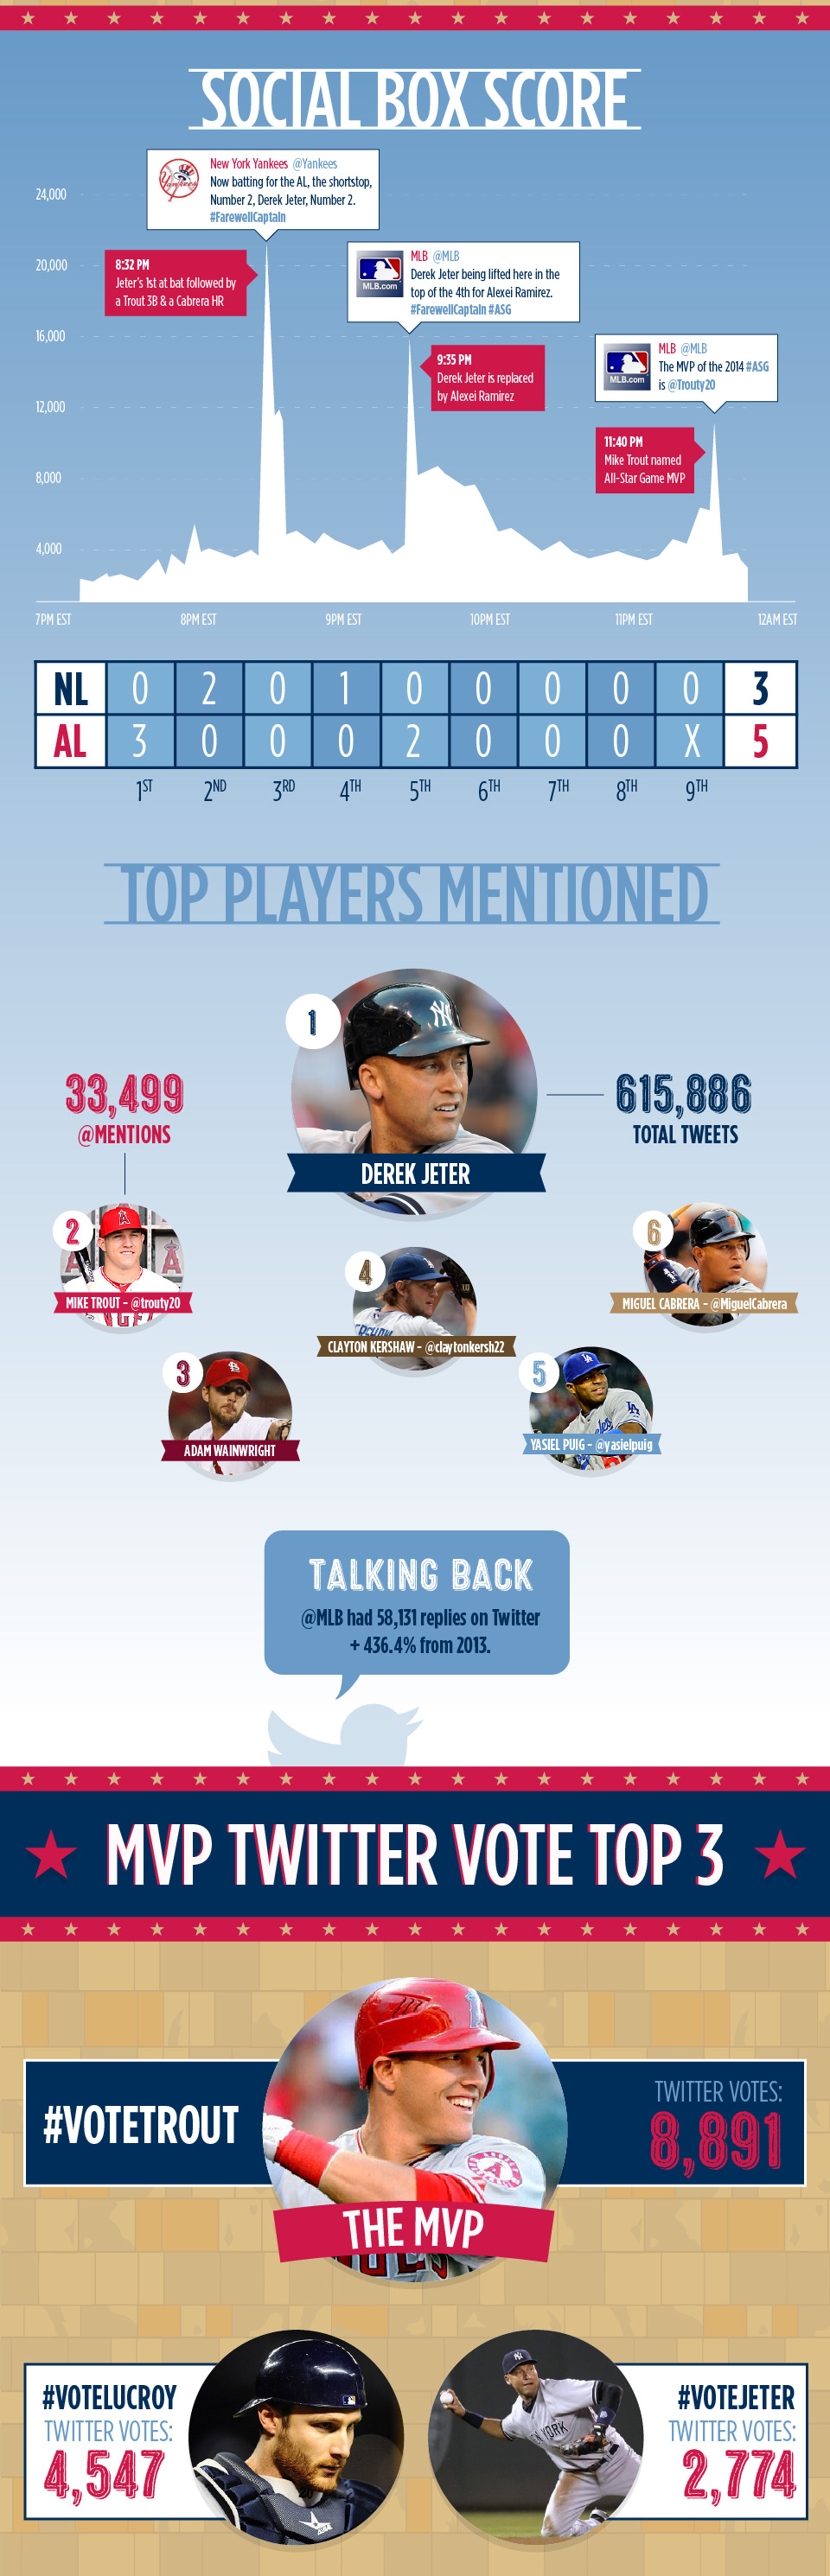 INFOGRAPHIC: #RE2PECT - Jeter, @Trouty20 share #ASG spotlight and trends